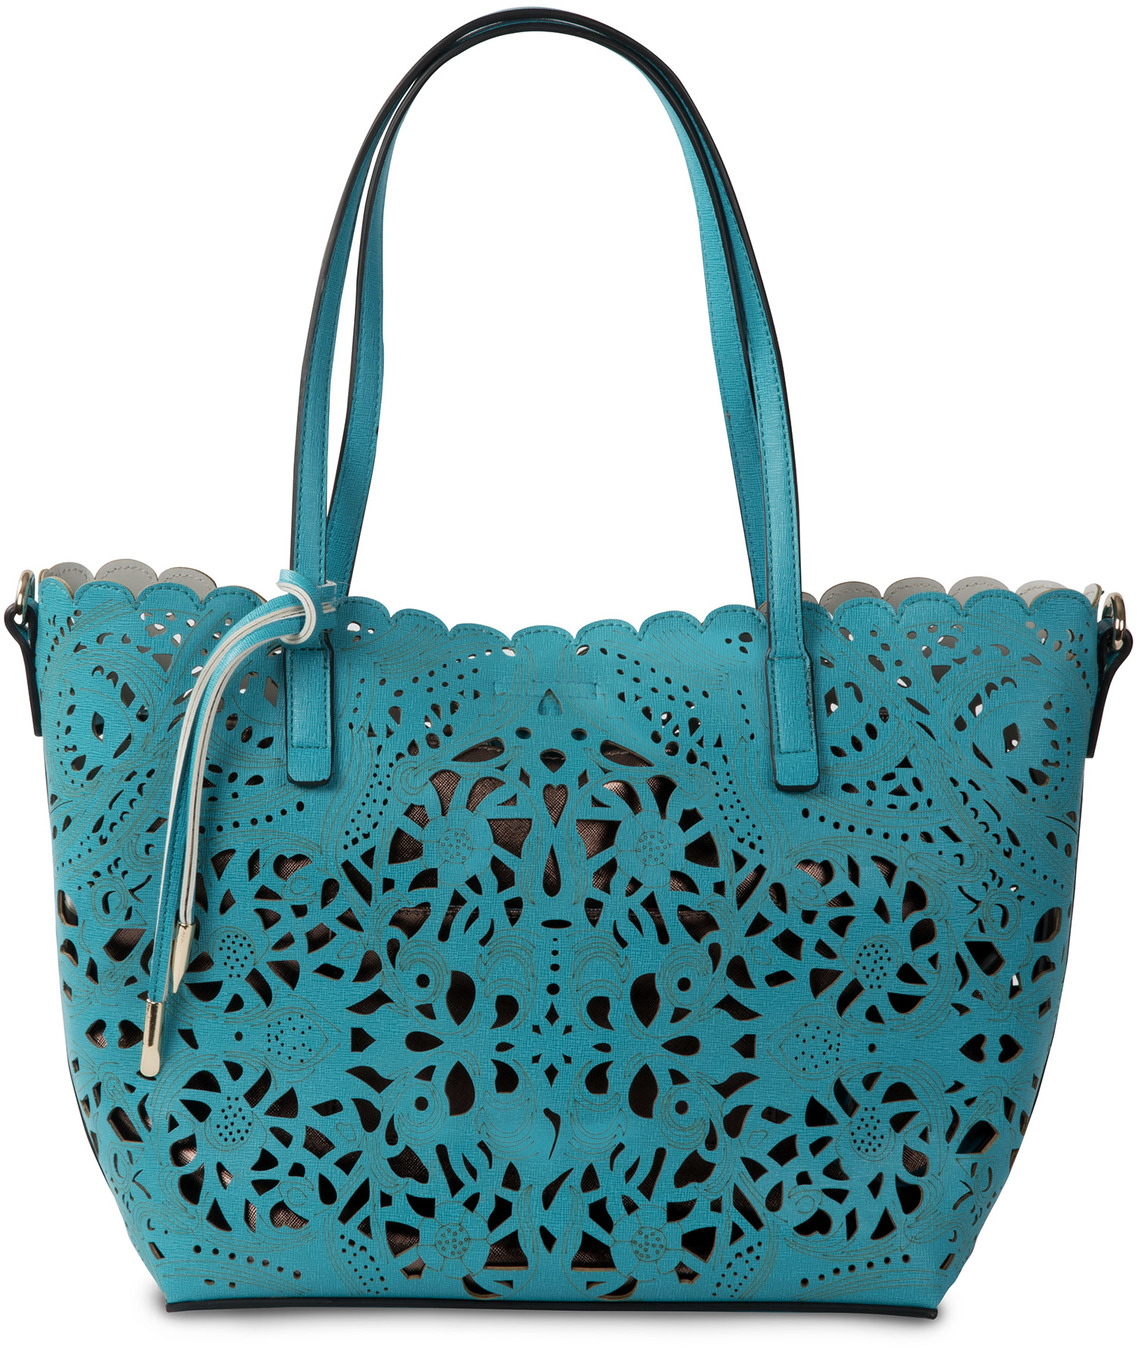 Alison Teal by H2Z Laser Cut Handbags - Alison Teal - Teal/Chocolate Tote